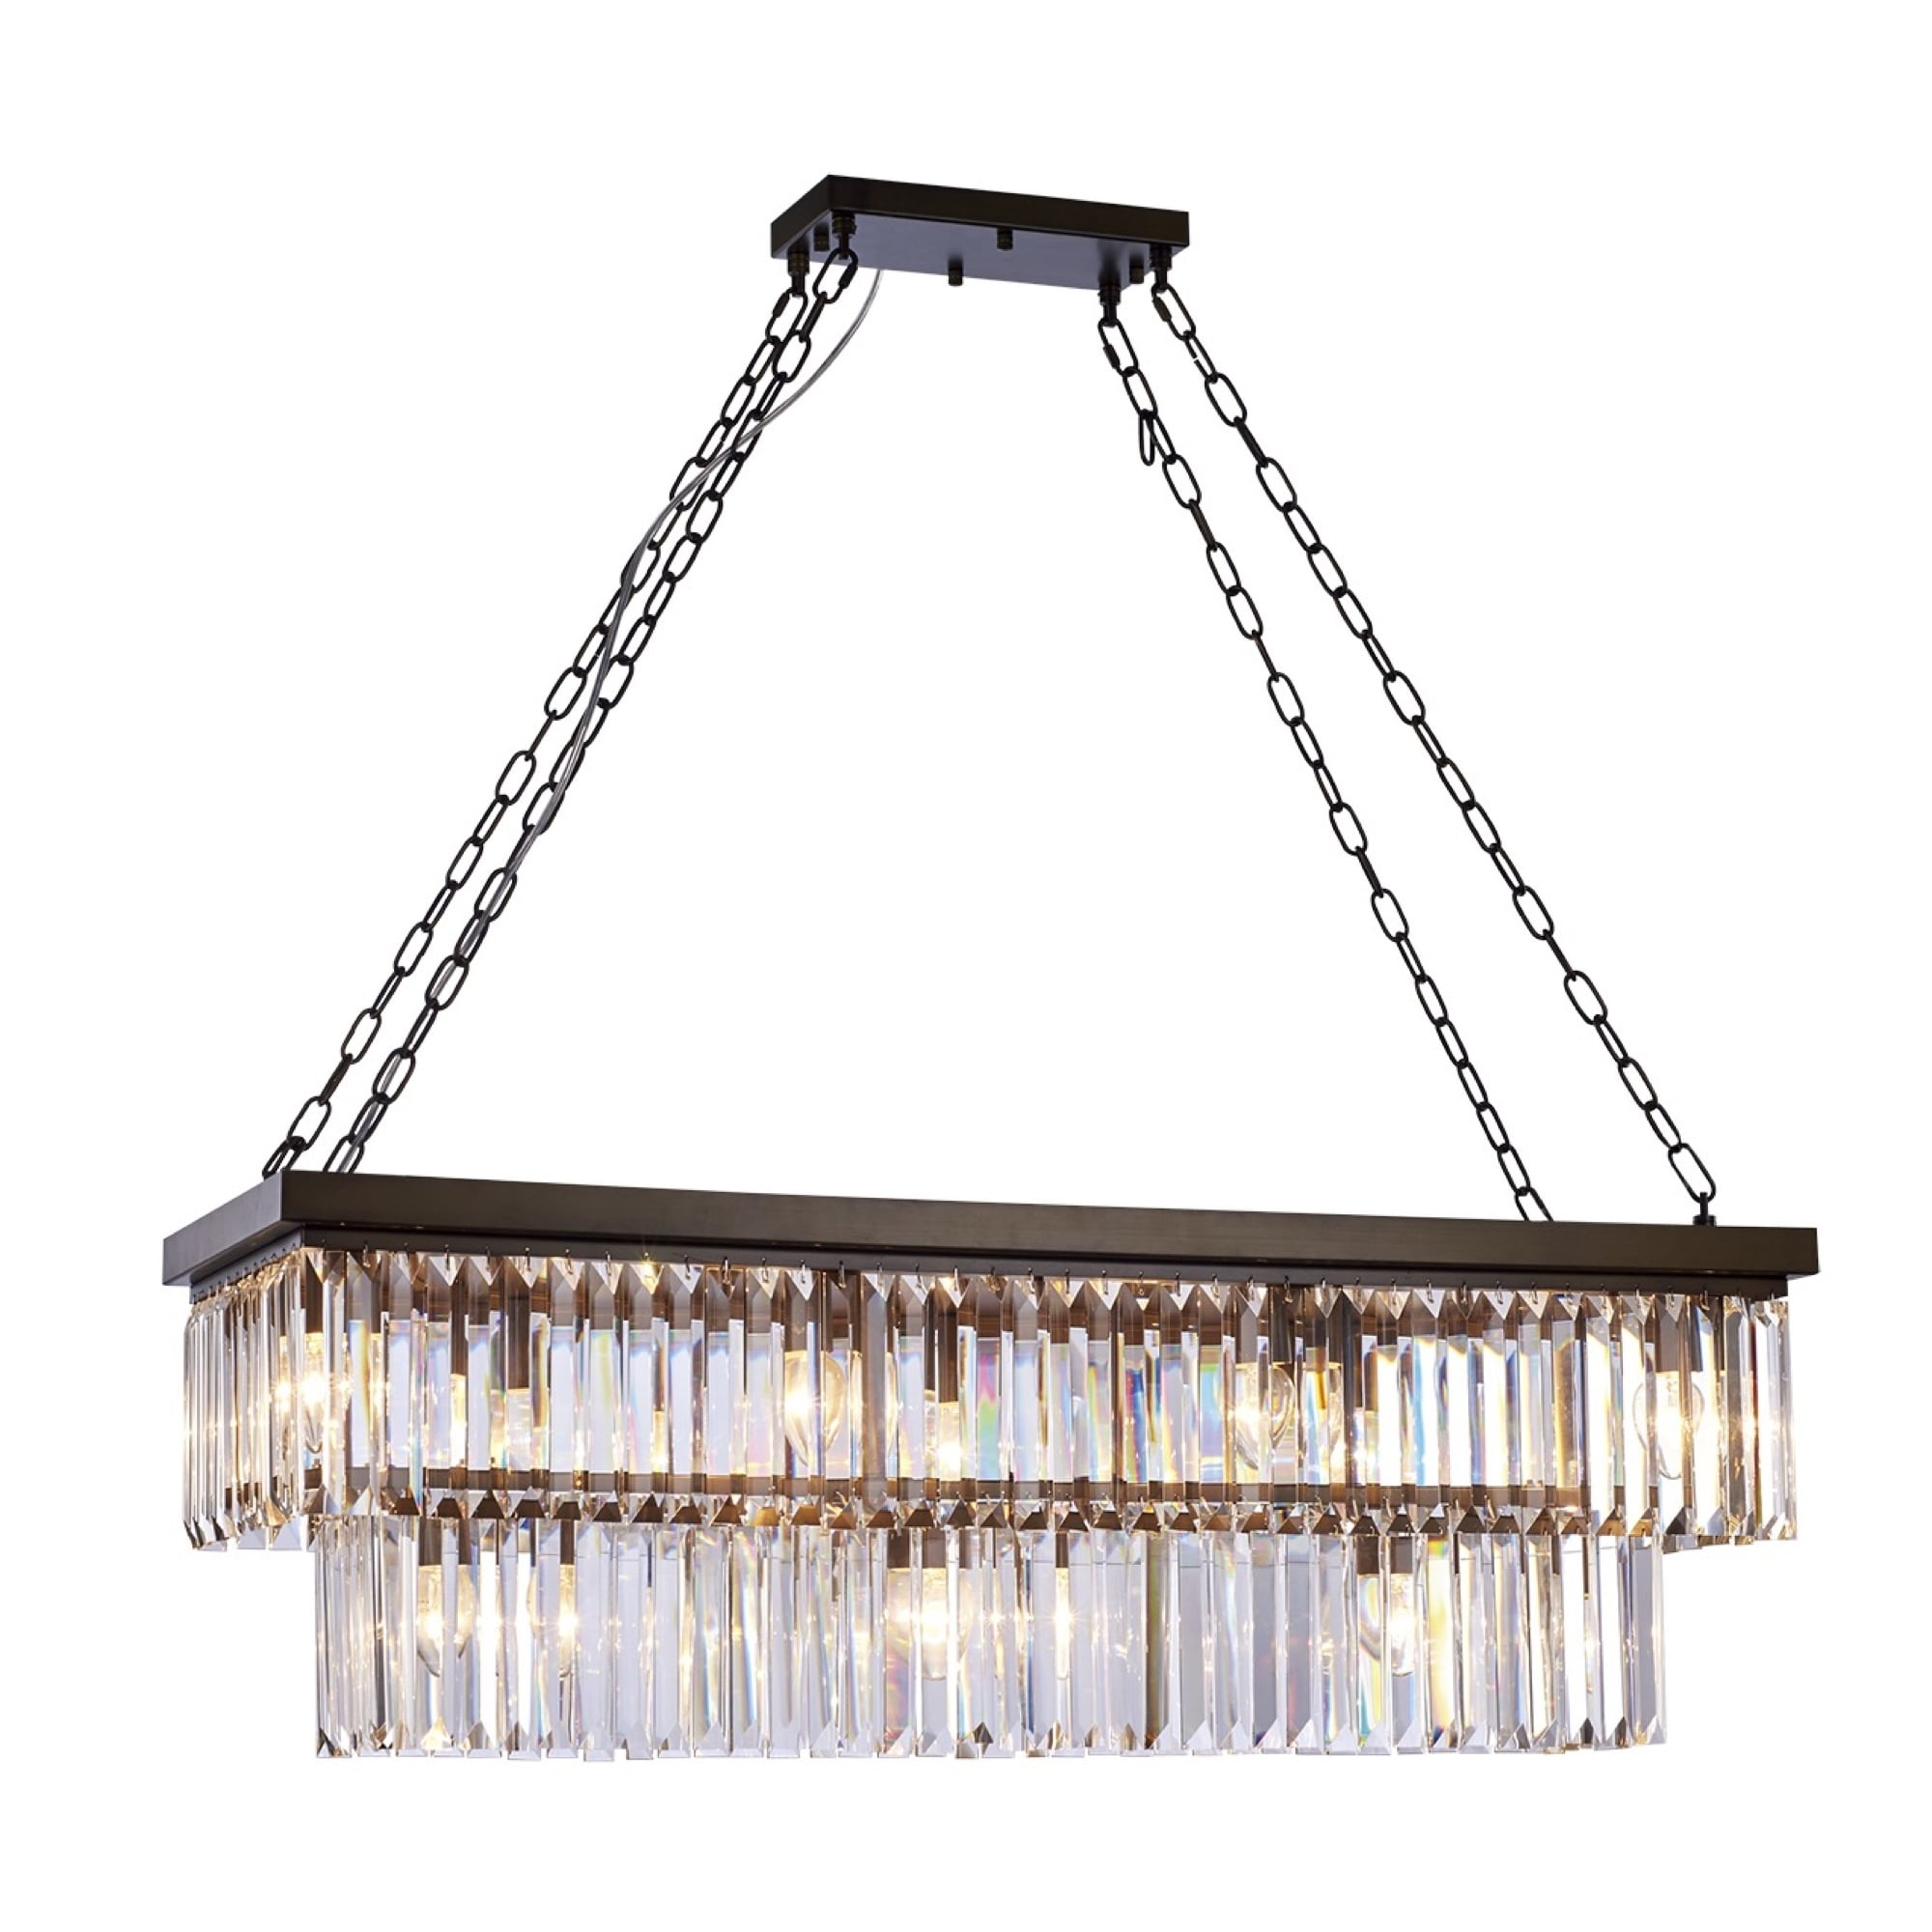 Glass Chain Island Chandelier Shades of Light | Chandelier